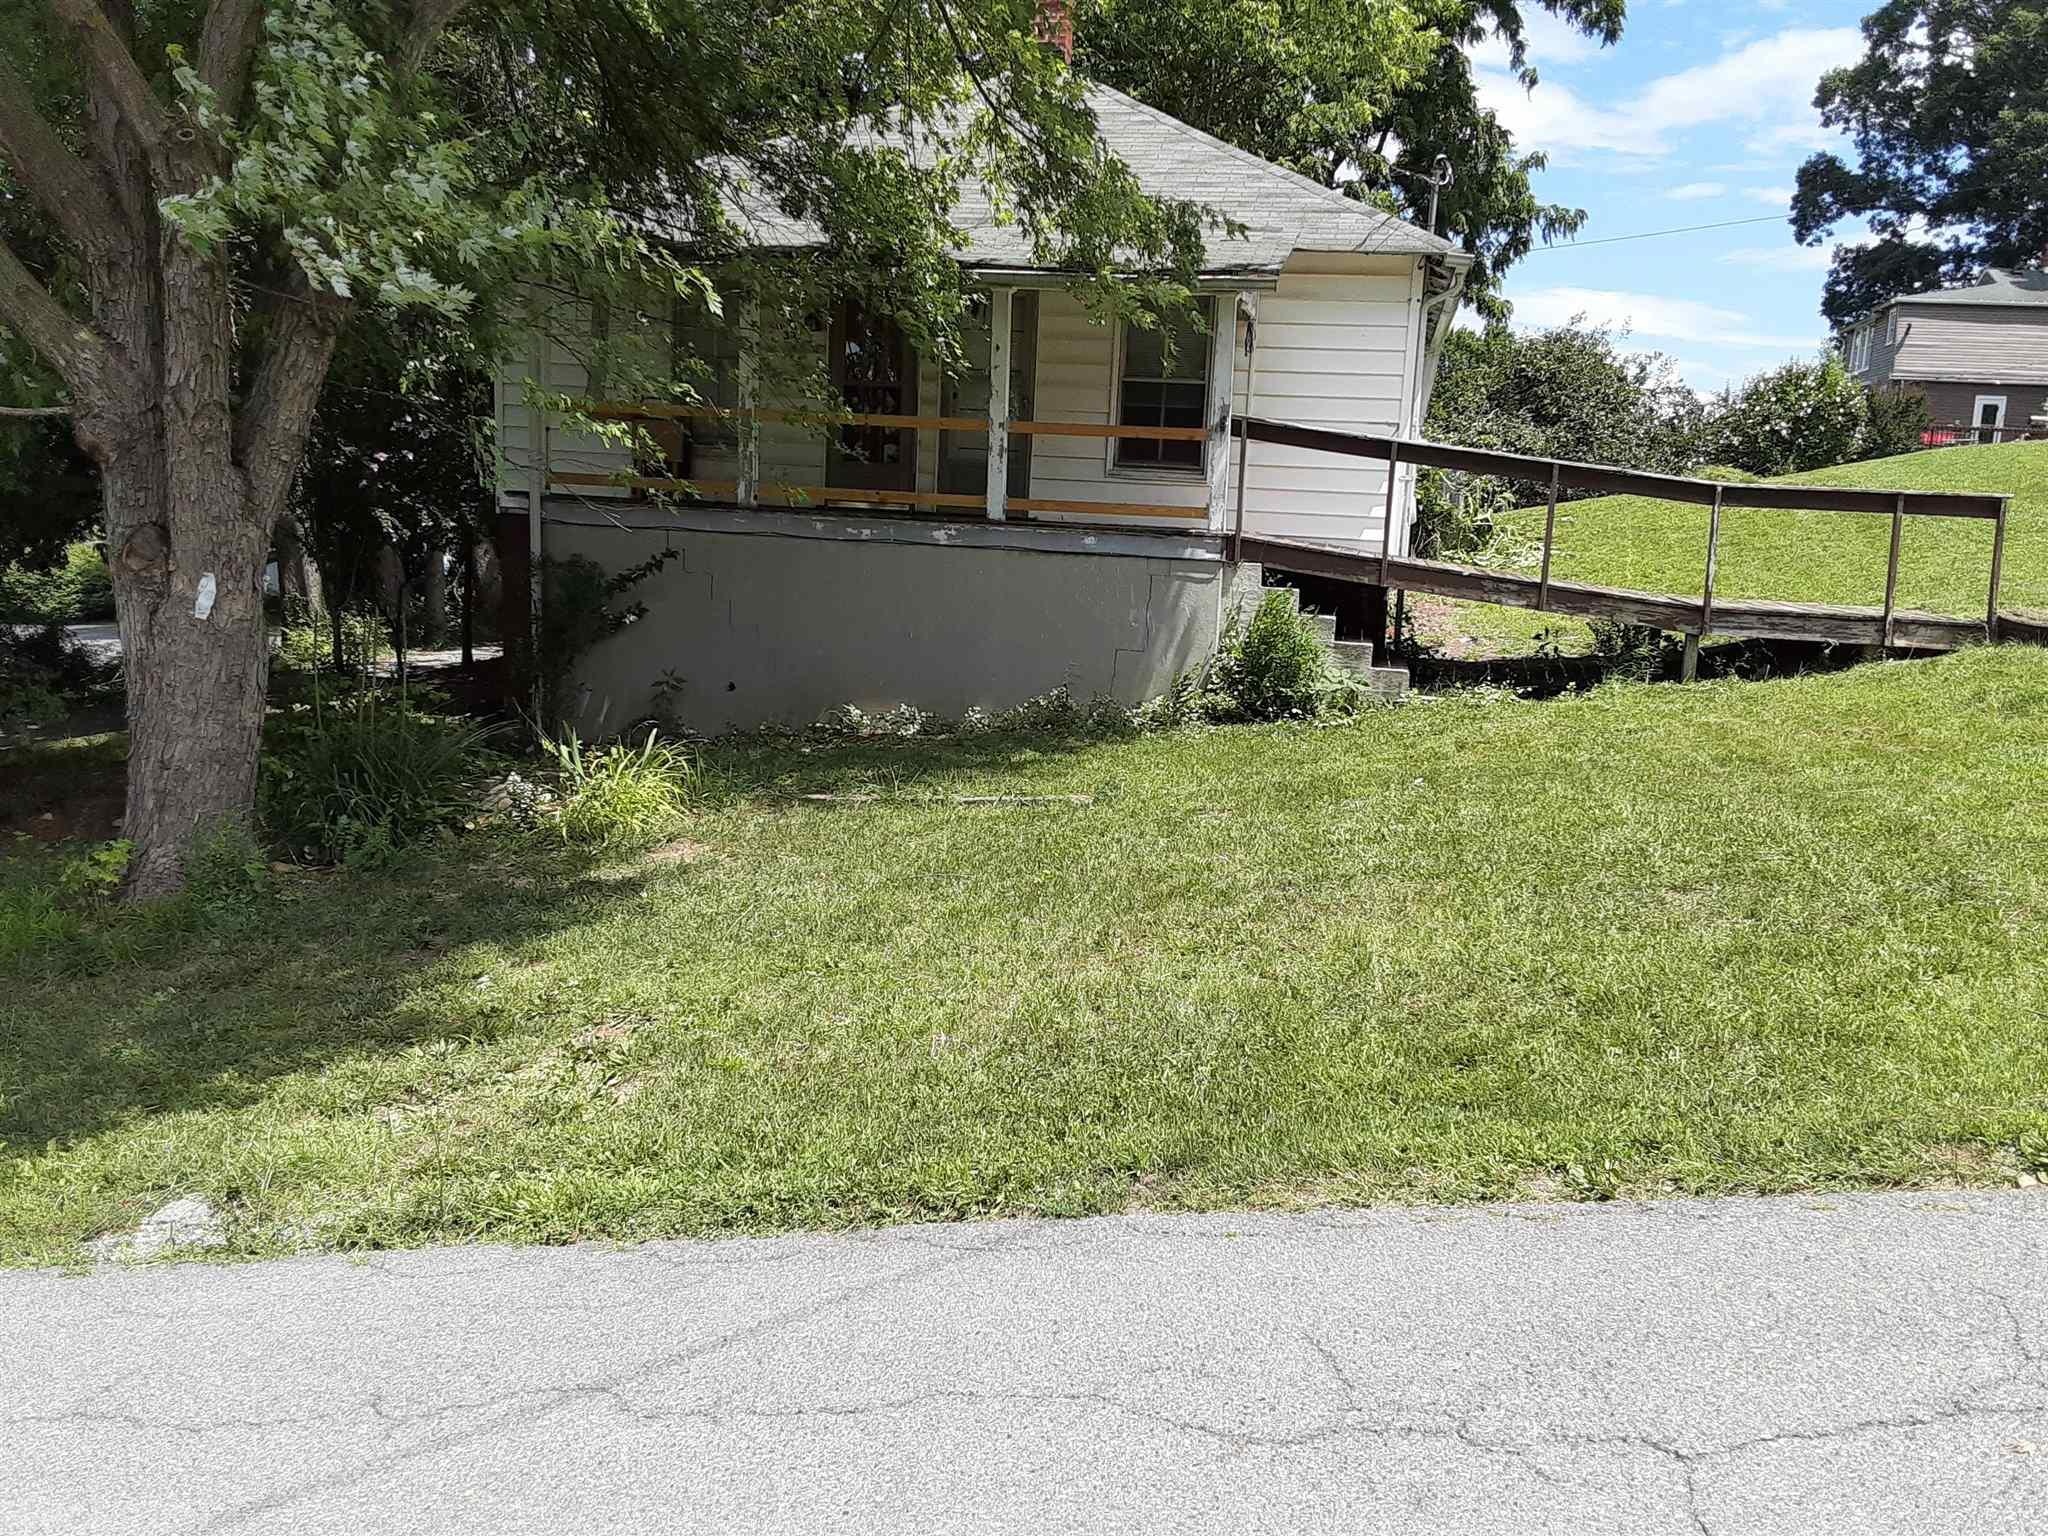 Great fixer upper with a nice size yard and shop in the back for working on that next hobby or project! Just up the road from the New River for outdoor activities and close to shopping! Property is zoned R-3 with all public utilities. Home is being sold AS-IS, WHERE-IS.